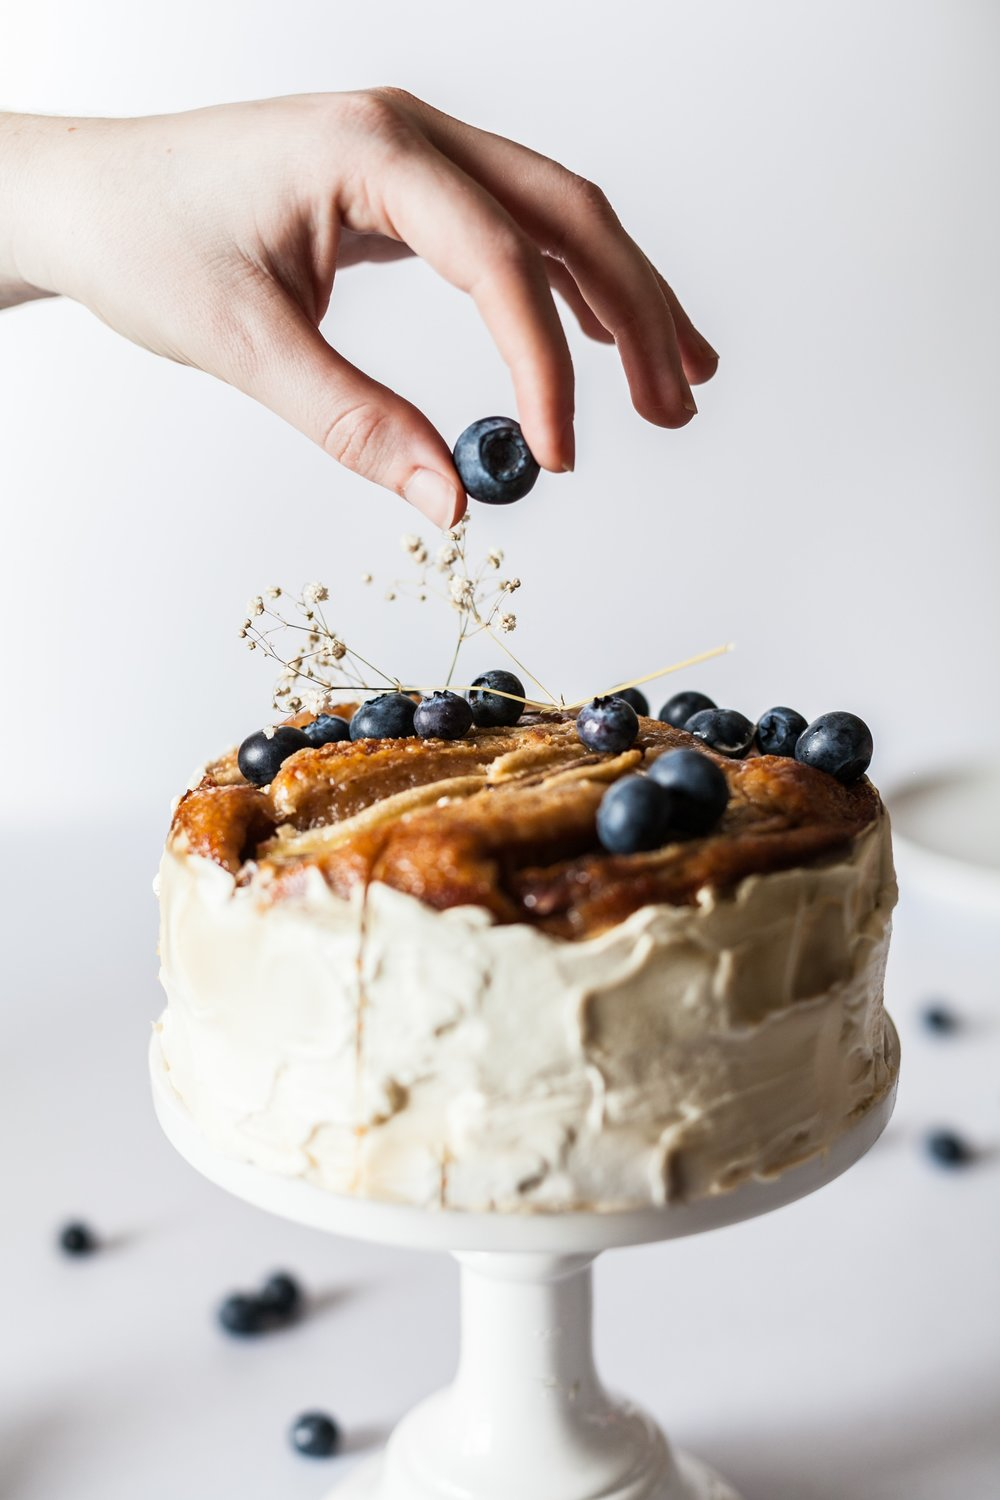 whole vegan ginger snap cake topped with blueberries